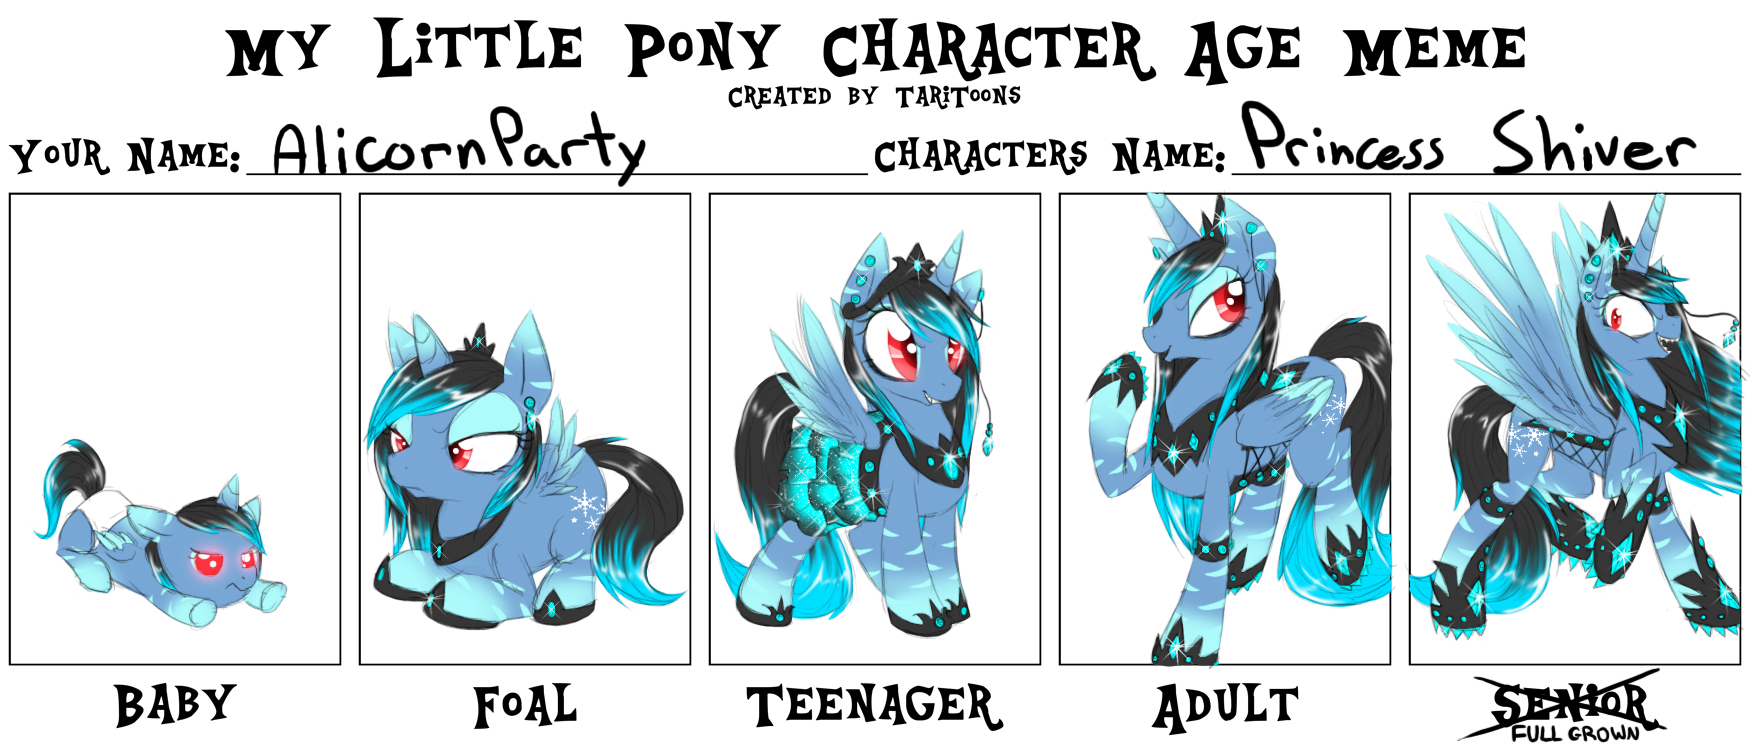 Character Design Meme : Mlp character age meme by alicornparty on deviantart